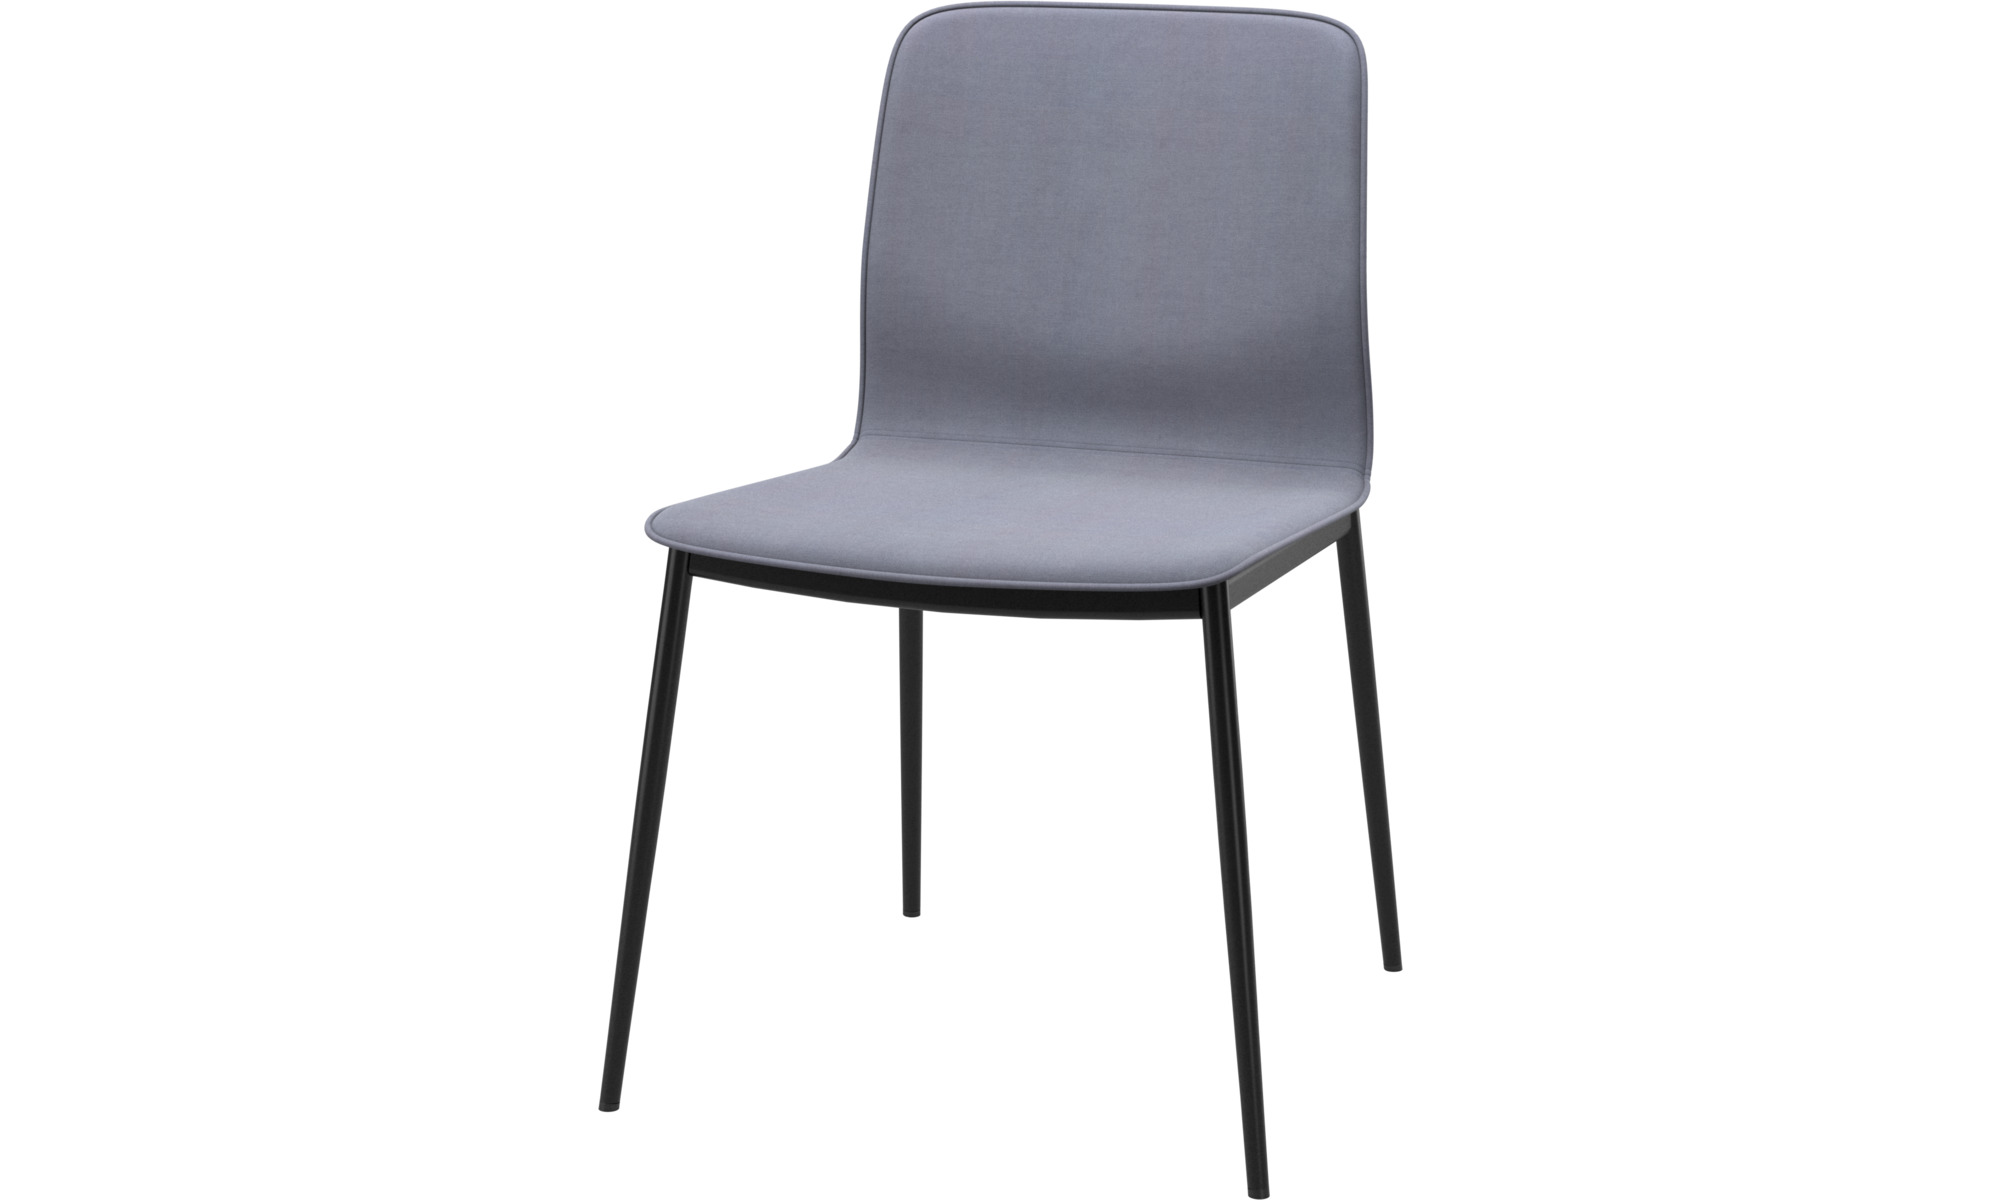 Dining chairs - Newport dining chair - Blue - Fabric